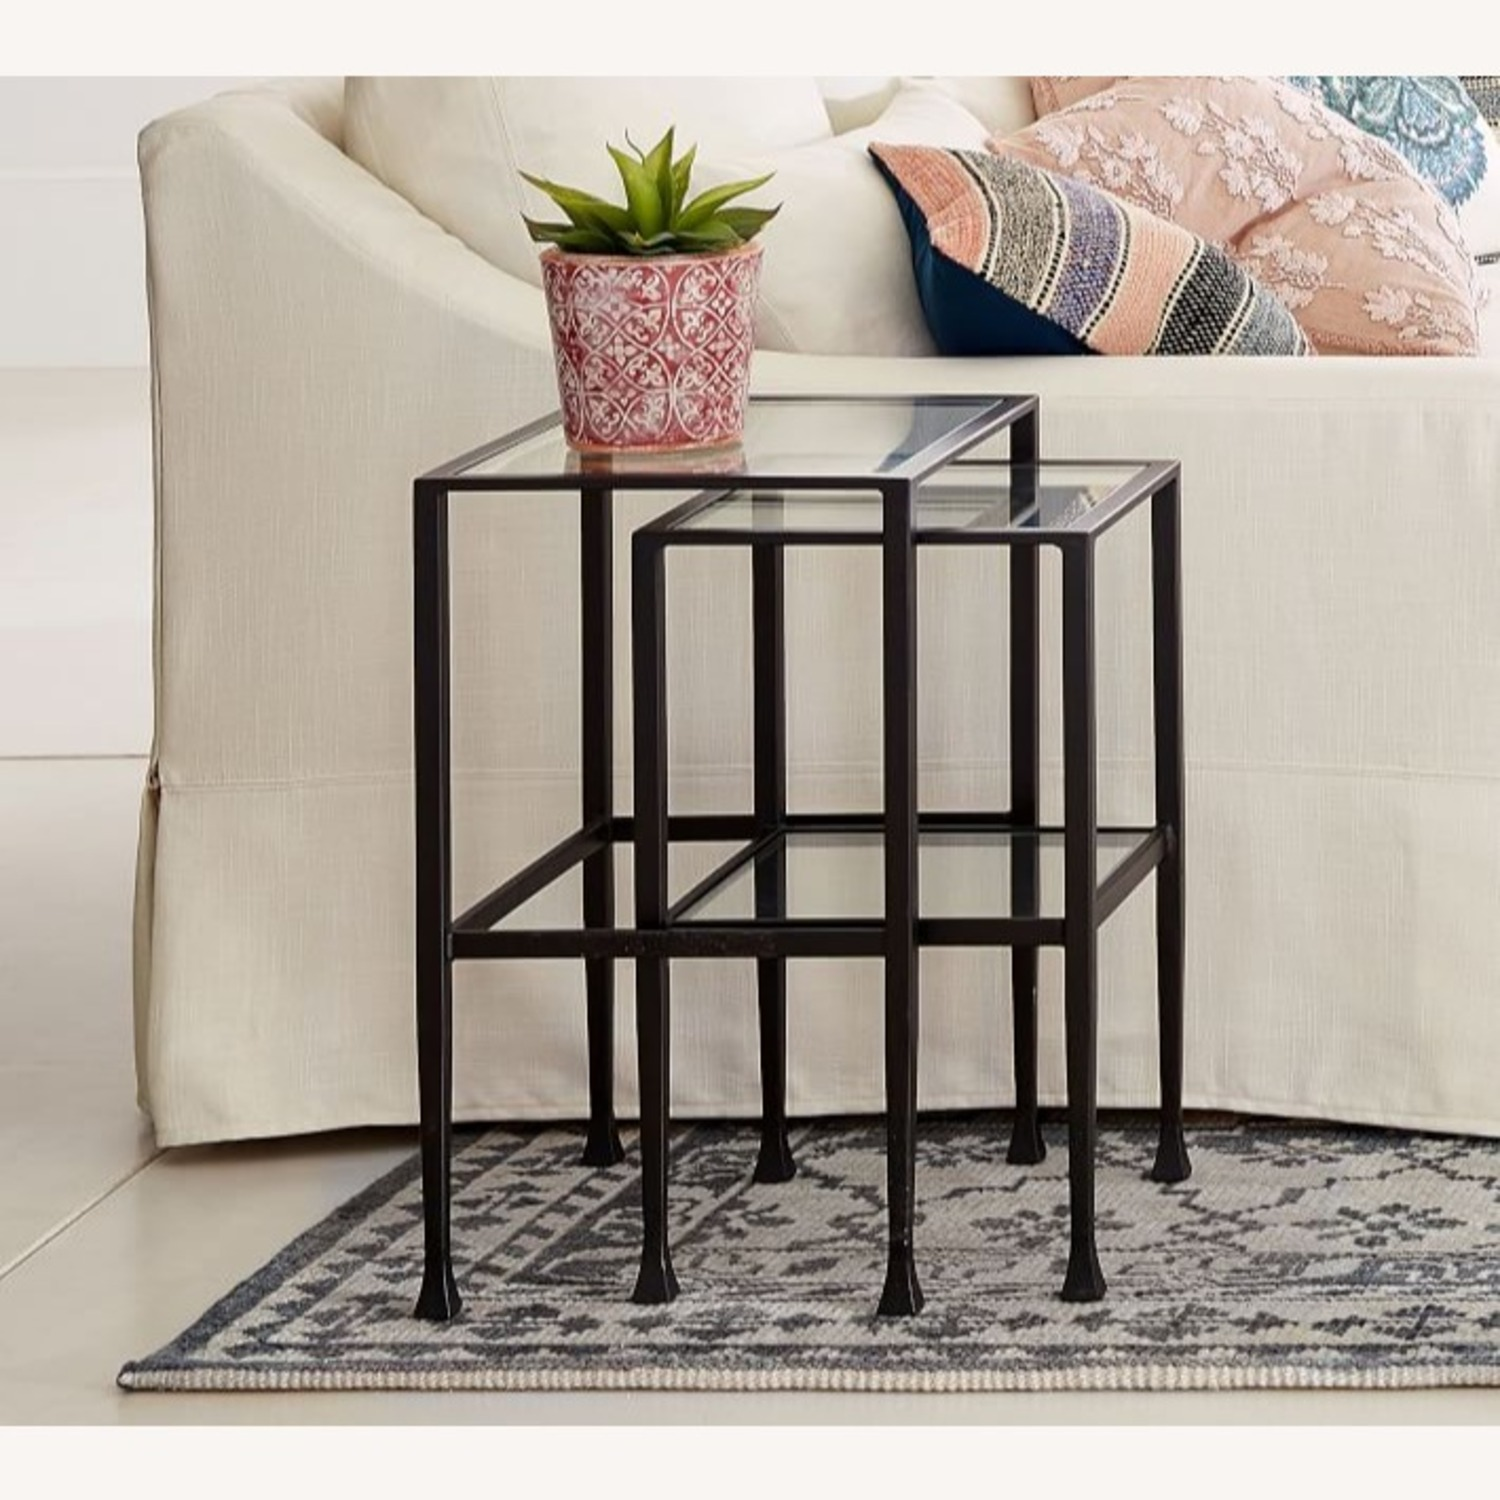 Pottery Barn Tanner Nesting End Tables - image-1